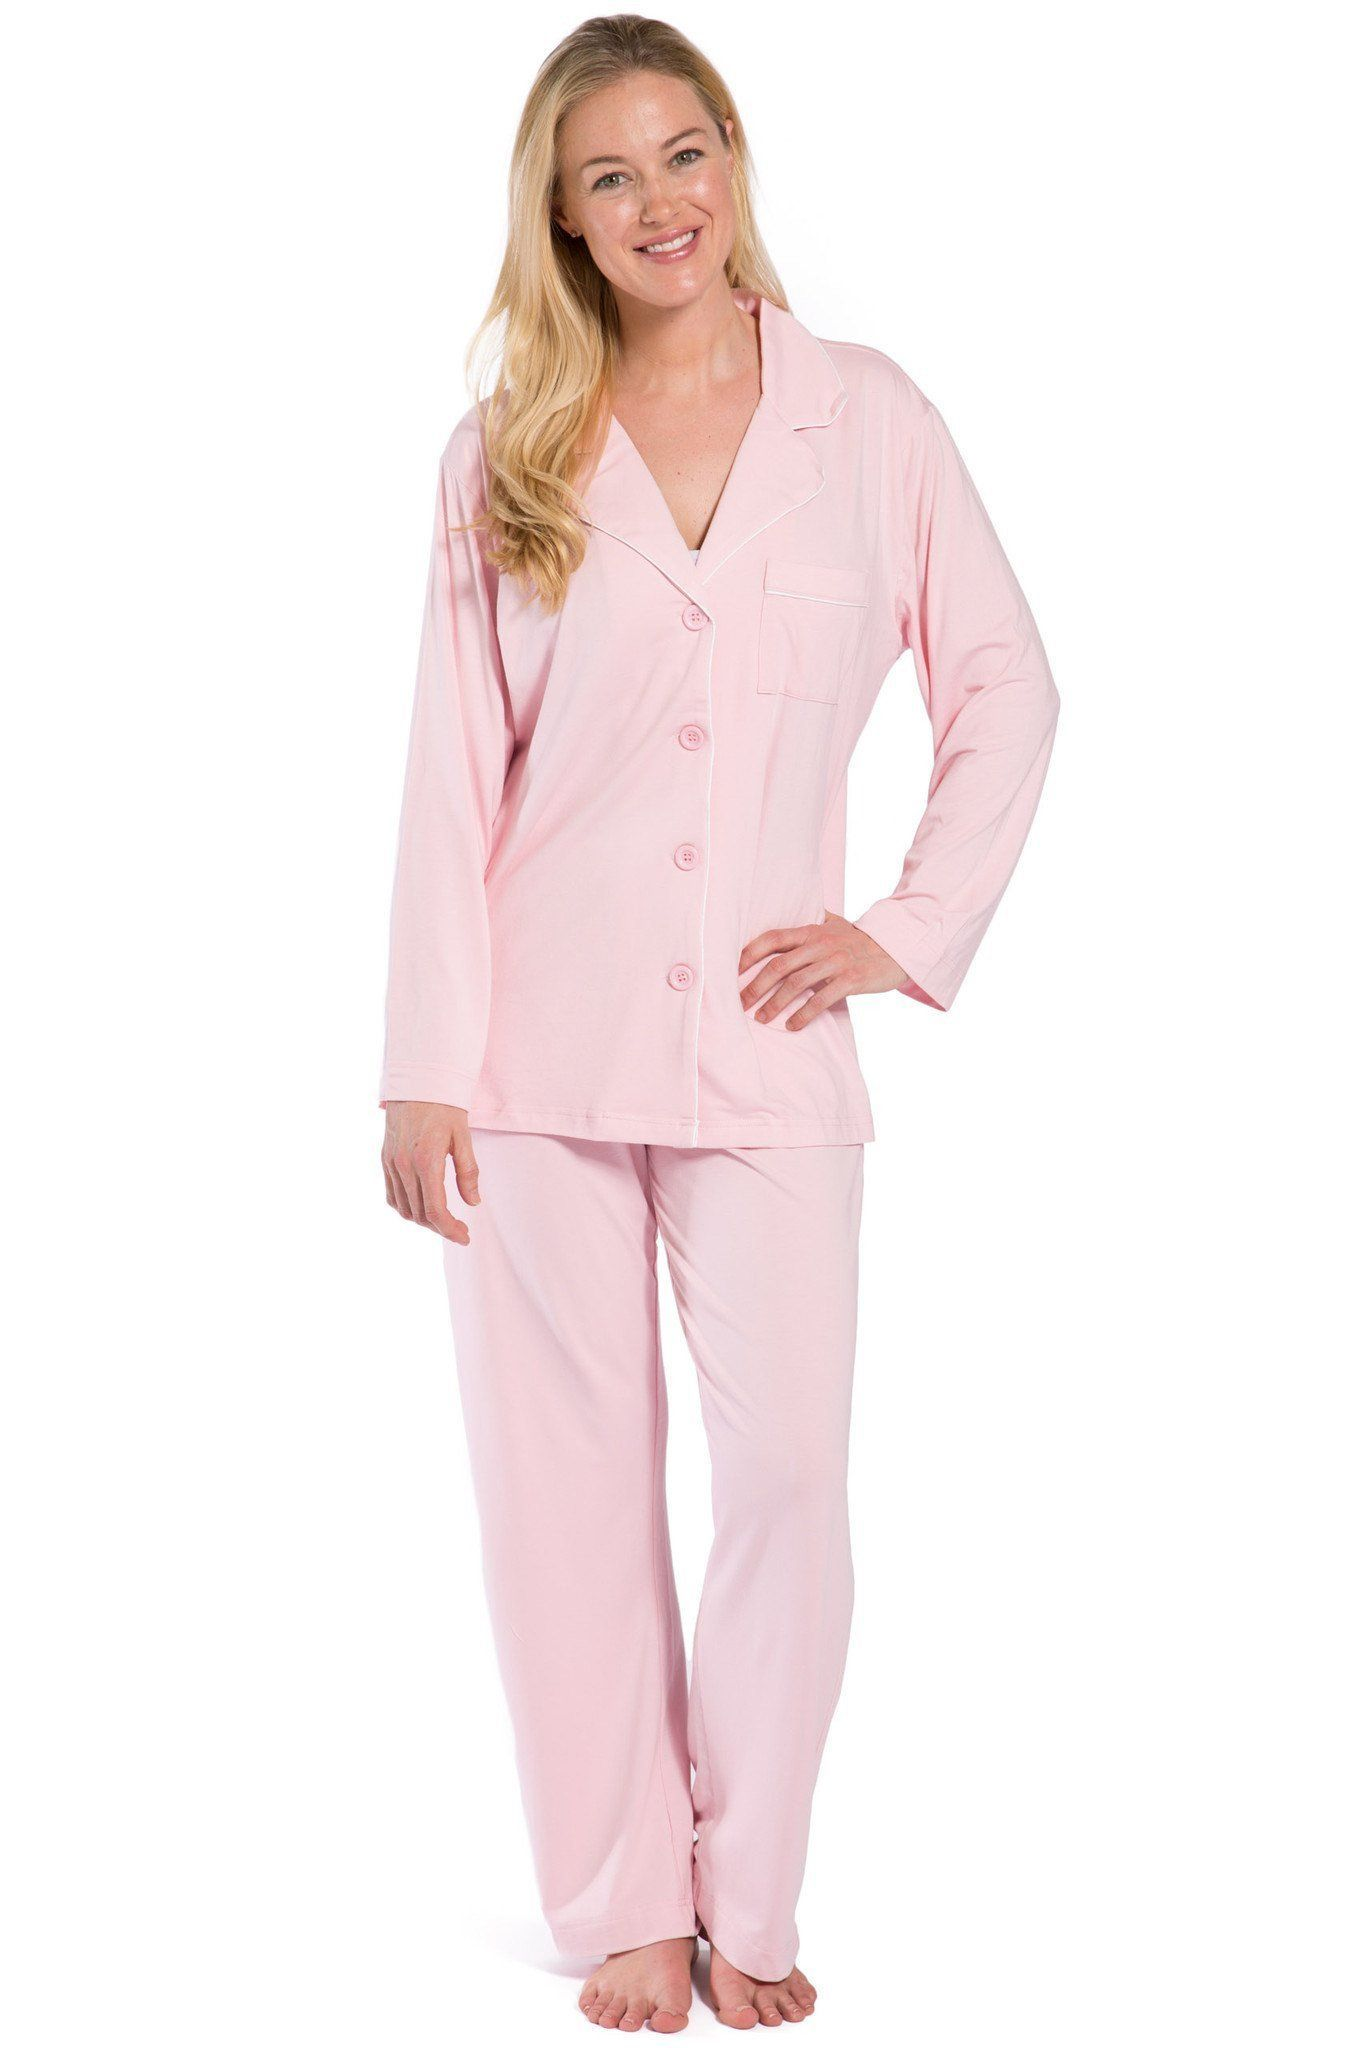 Womens>Sleep And Lounge>Pajamas - Women's Classic Ecofabric™ Full Length Pajama Set